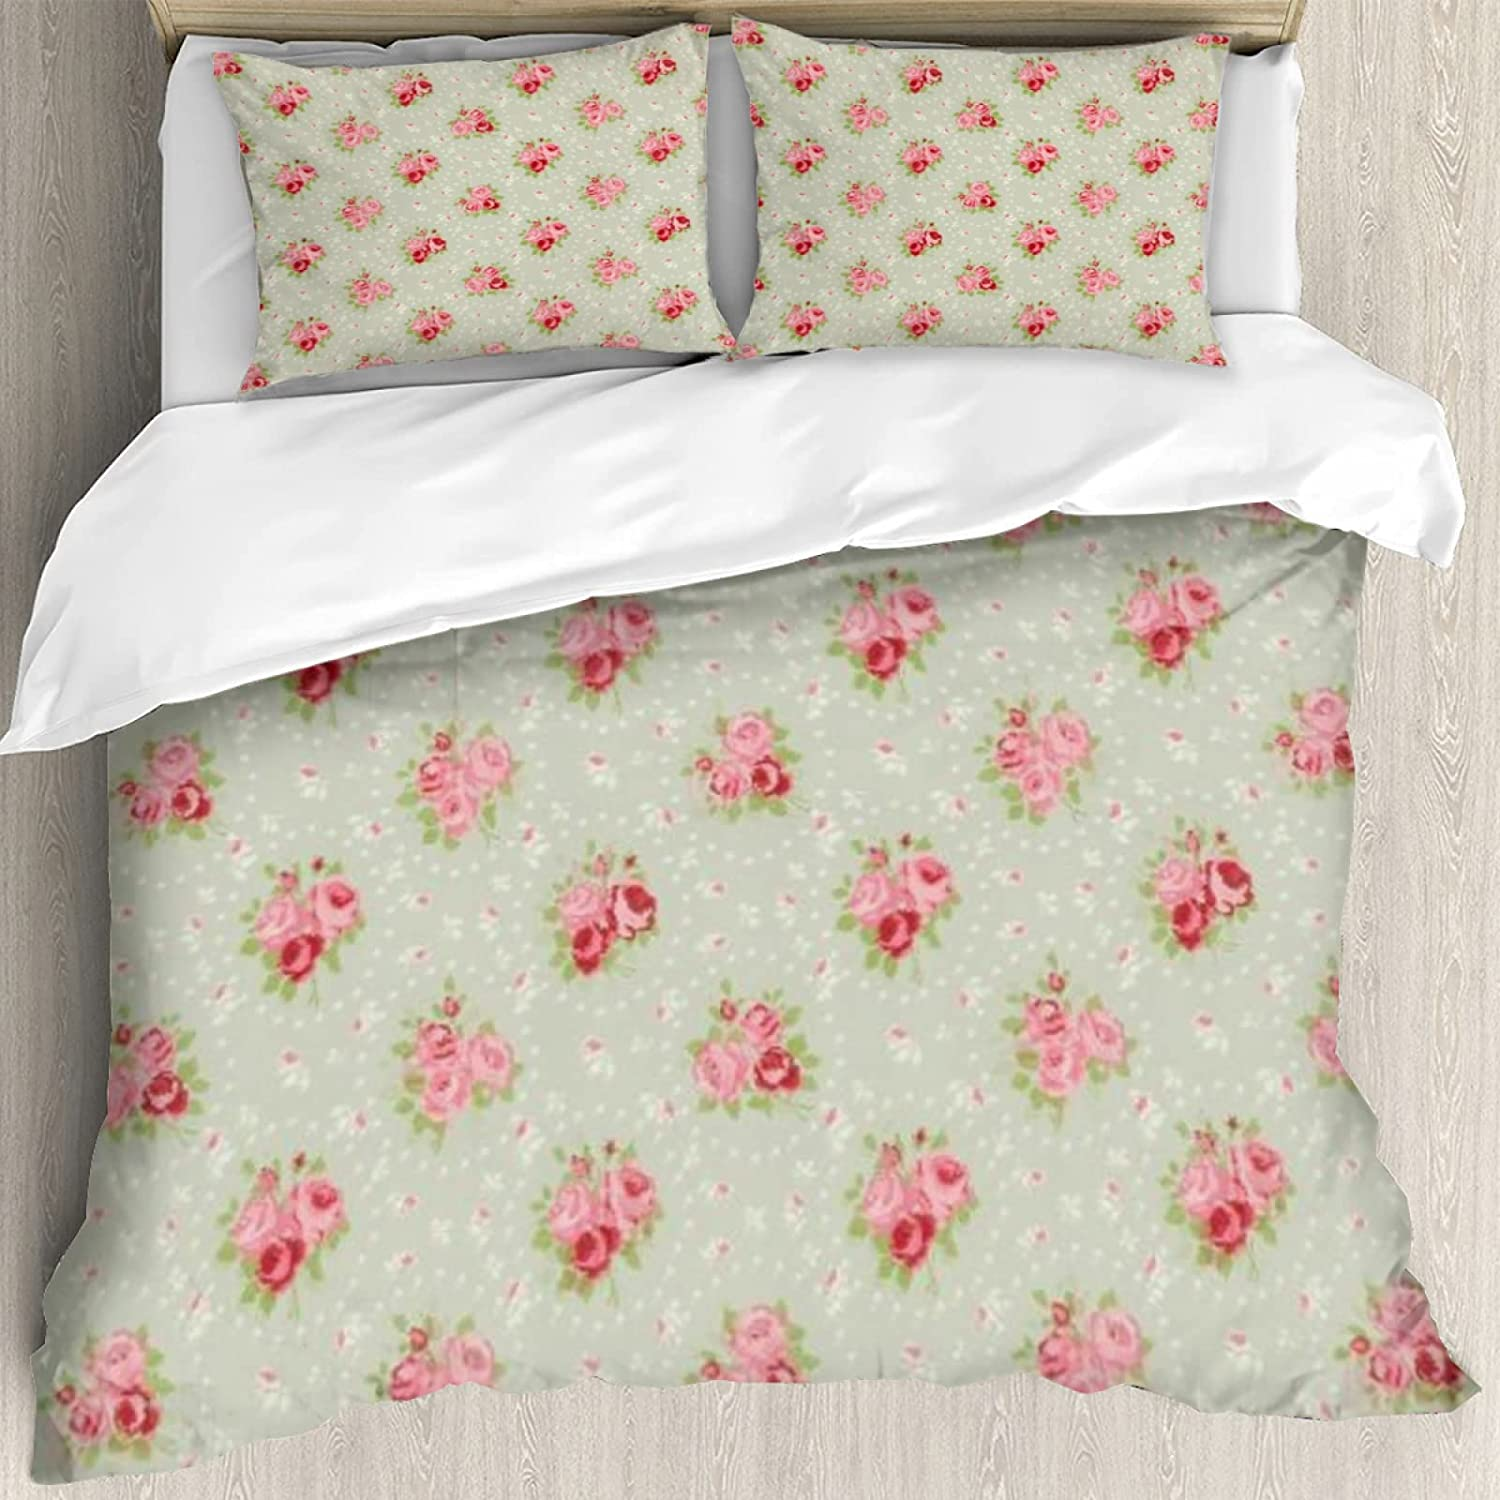 Duvet Cover Set 60x80inch,Shabby Chic English Roses Feminine Spring Garden Flourish Retro Style,Decorative 3 Piece Bedding Set with 2 Pillow Shams, Twin/Full/Queen/King Size yyj